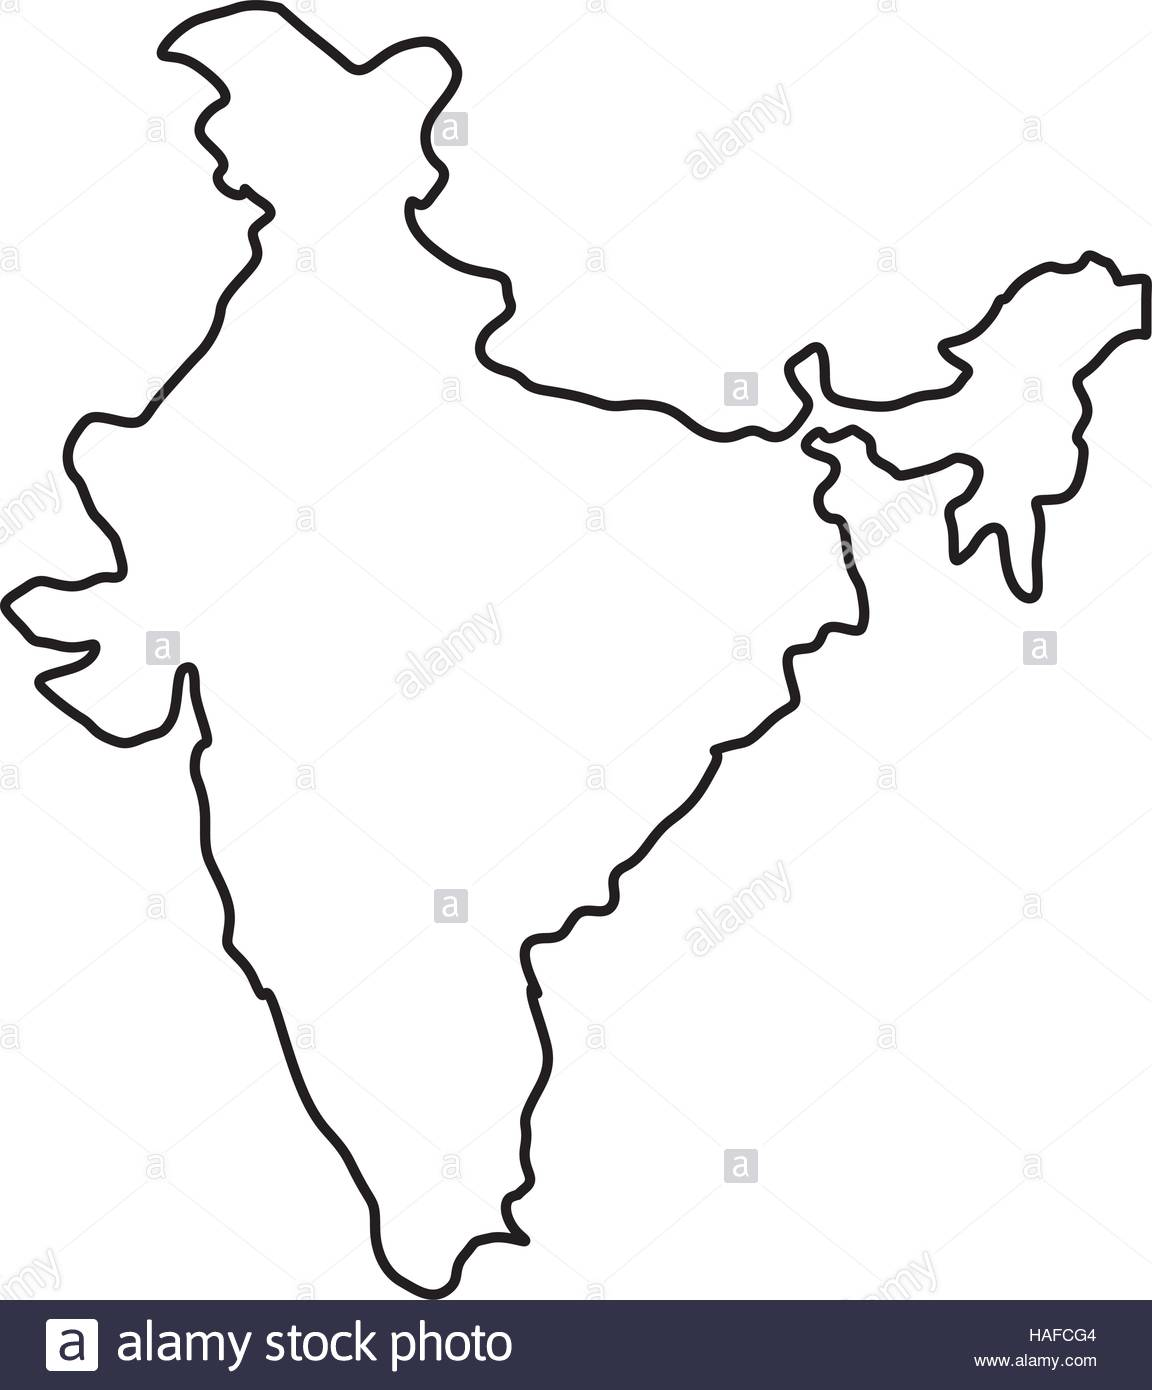 1152x1390 India Map Silhouette Stock Vector Art Amp Illustration, Vector Image